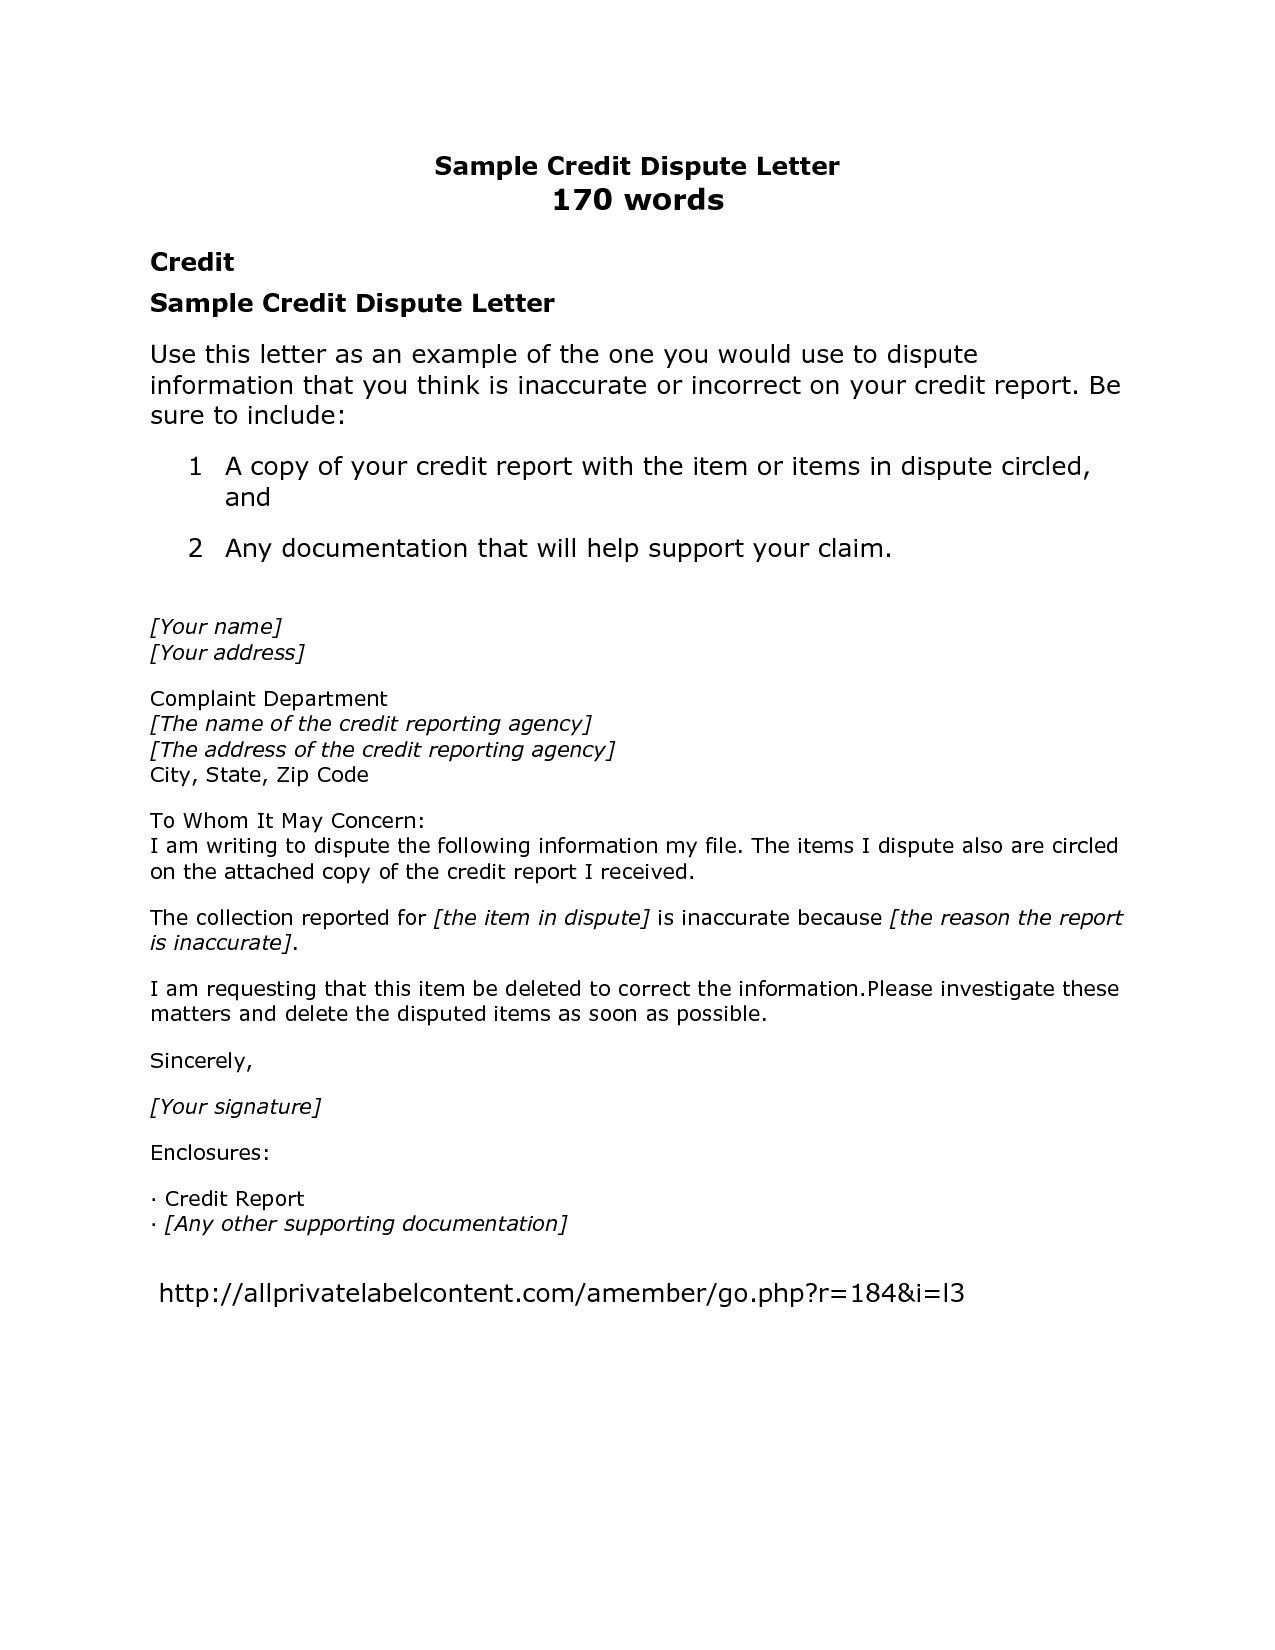 sample letter requesting credit report dispute digital marketing experience resume better samples nice objective for cv